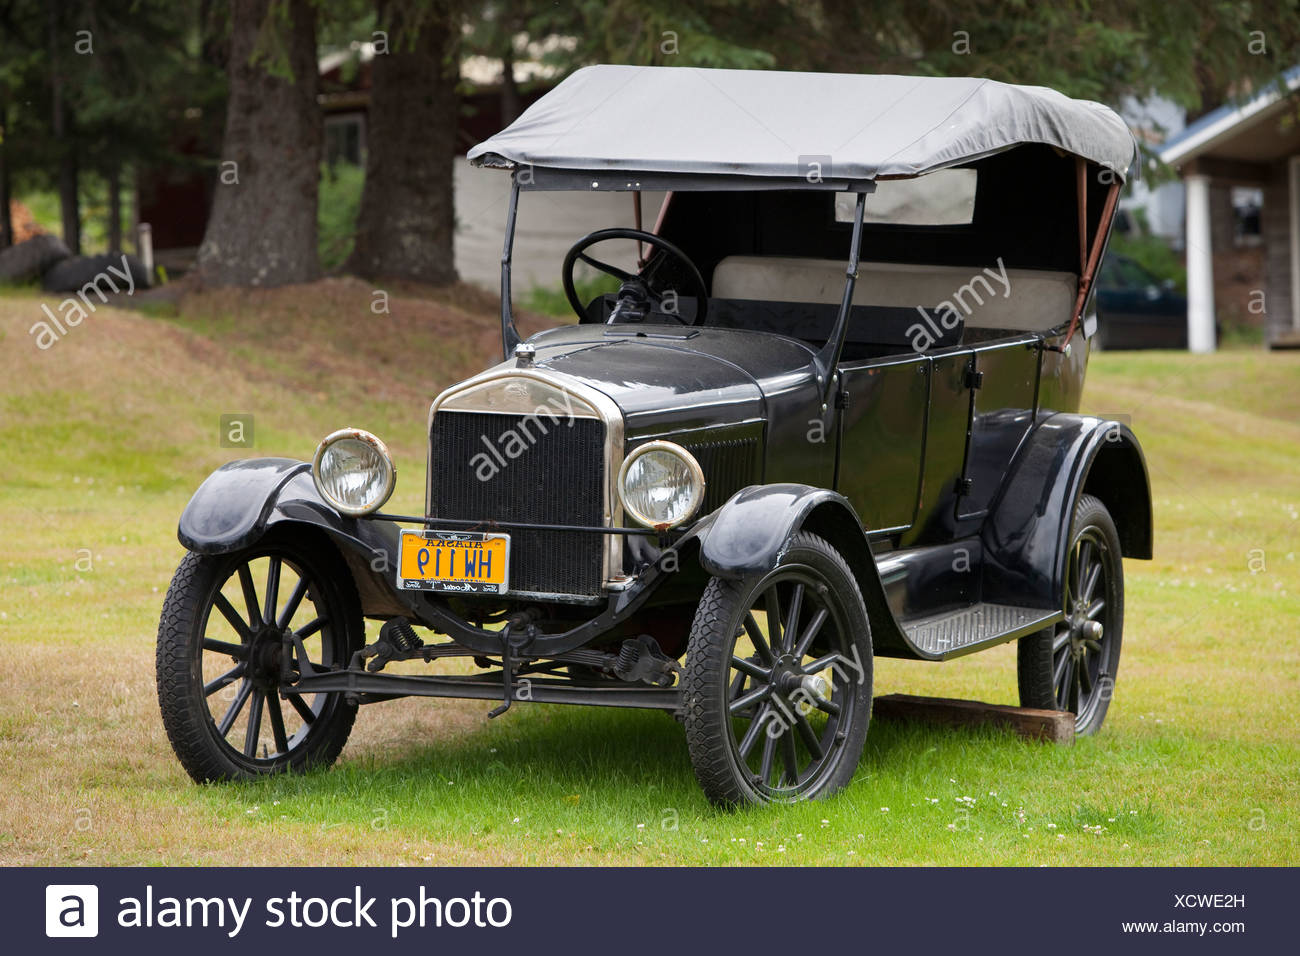 Historic car, automobile, Ford Model T, Tin Lizzie, Flivver - Stock Image